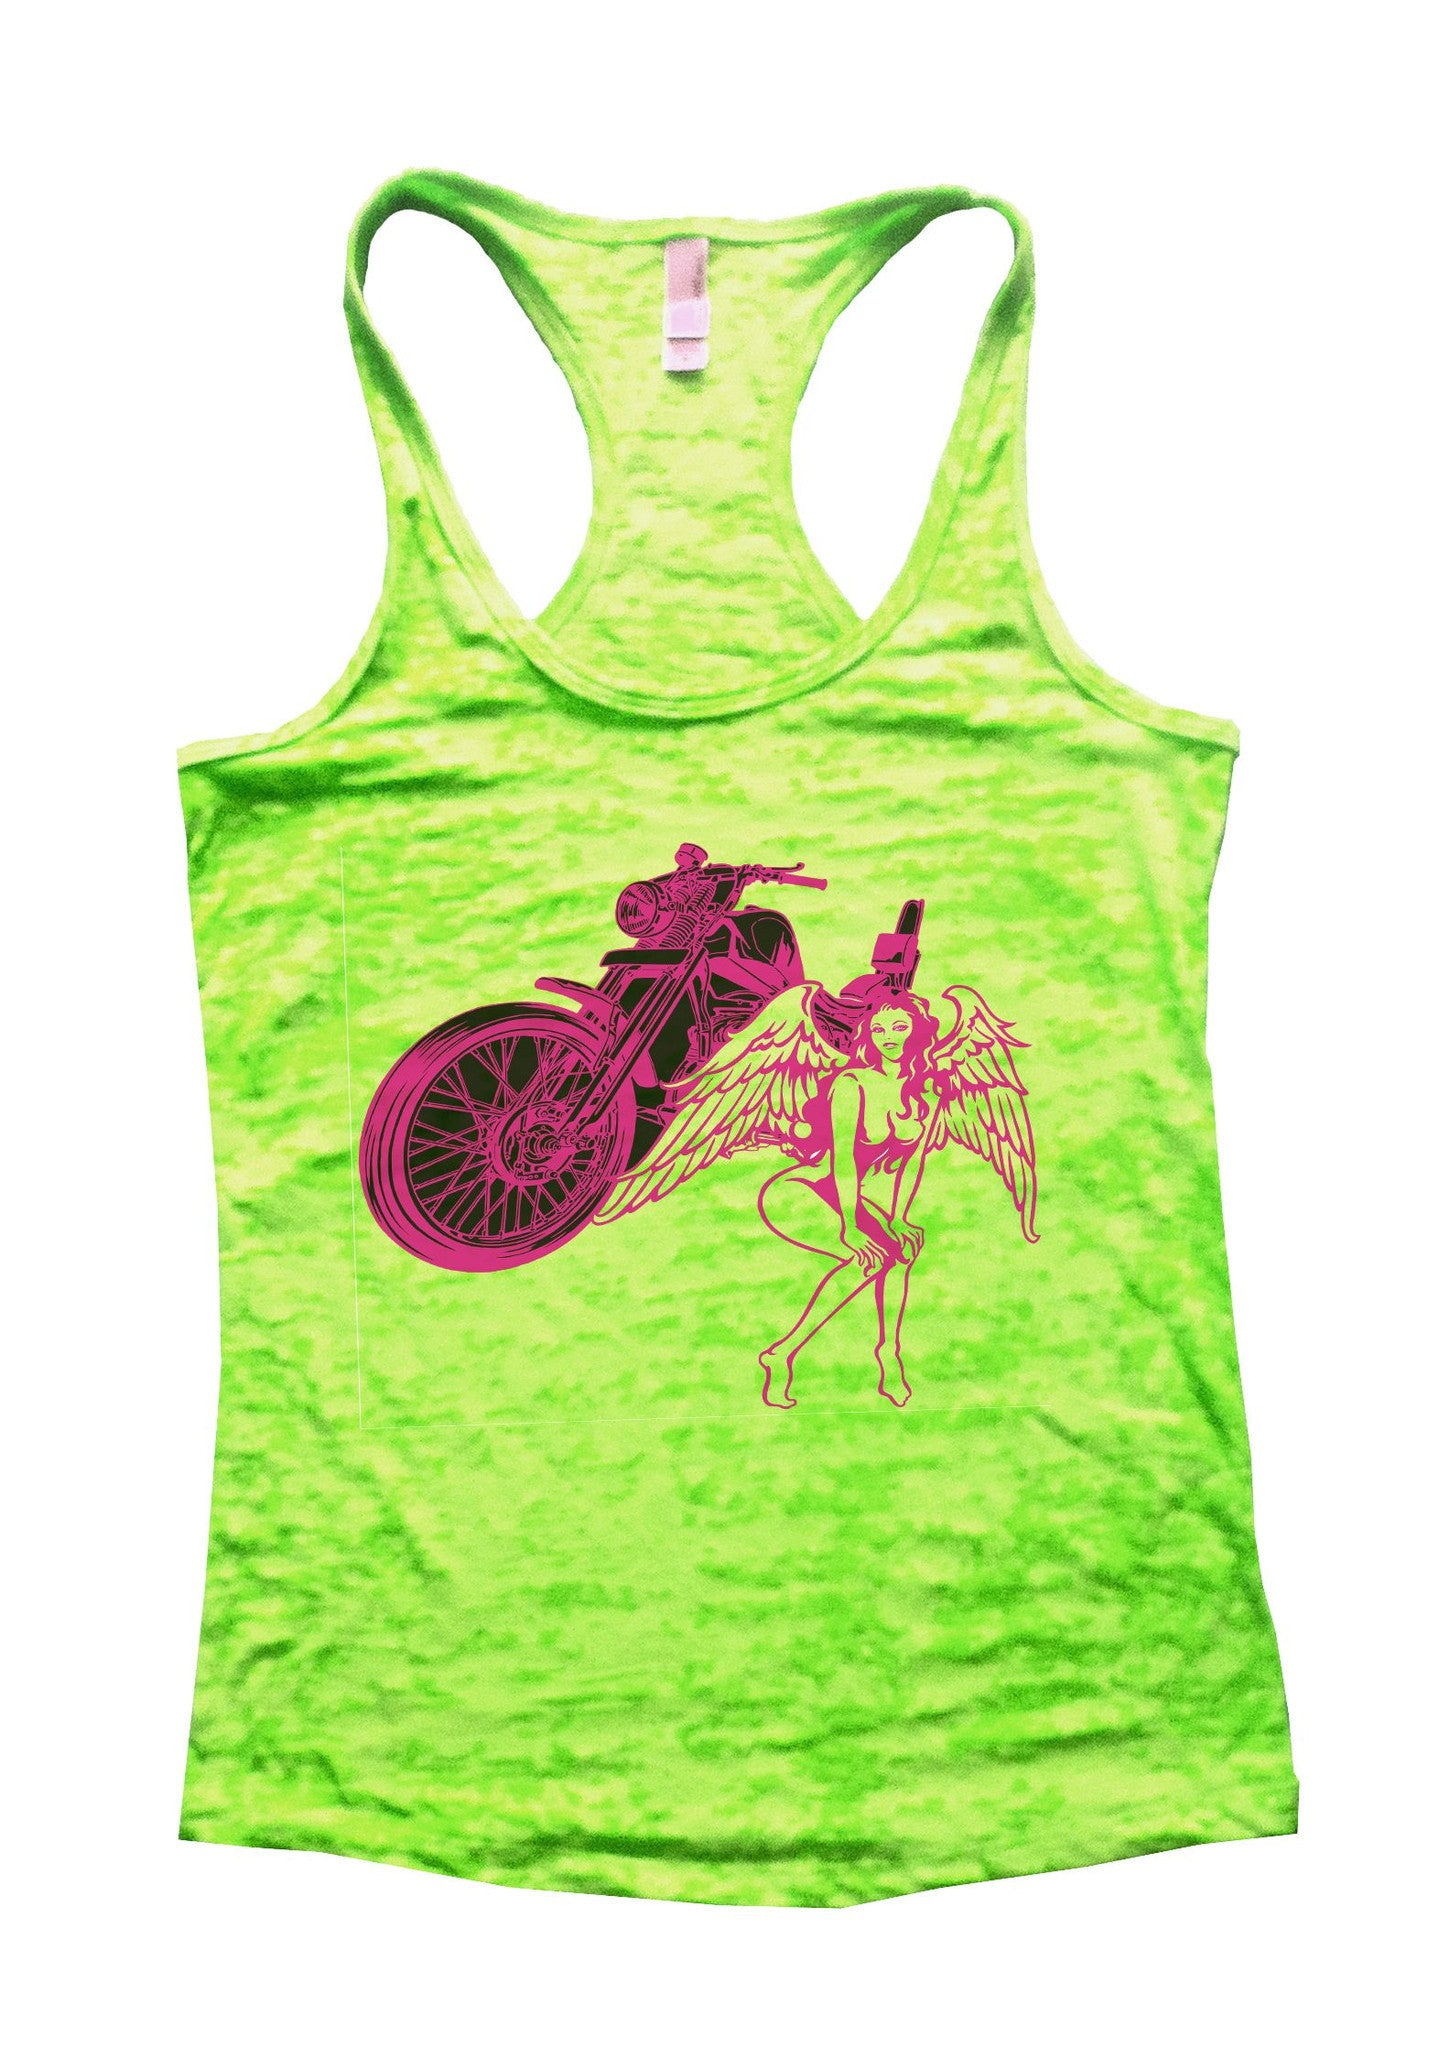 Bike And Women Burnout Tank Top By BurnoutTankTops.com - 700 - Funny Shirts Tank Tops Burnouts and Triblends  - 1